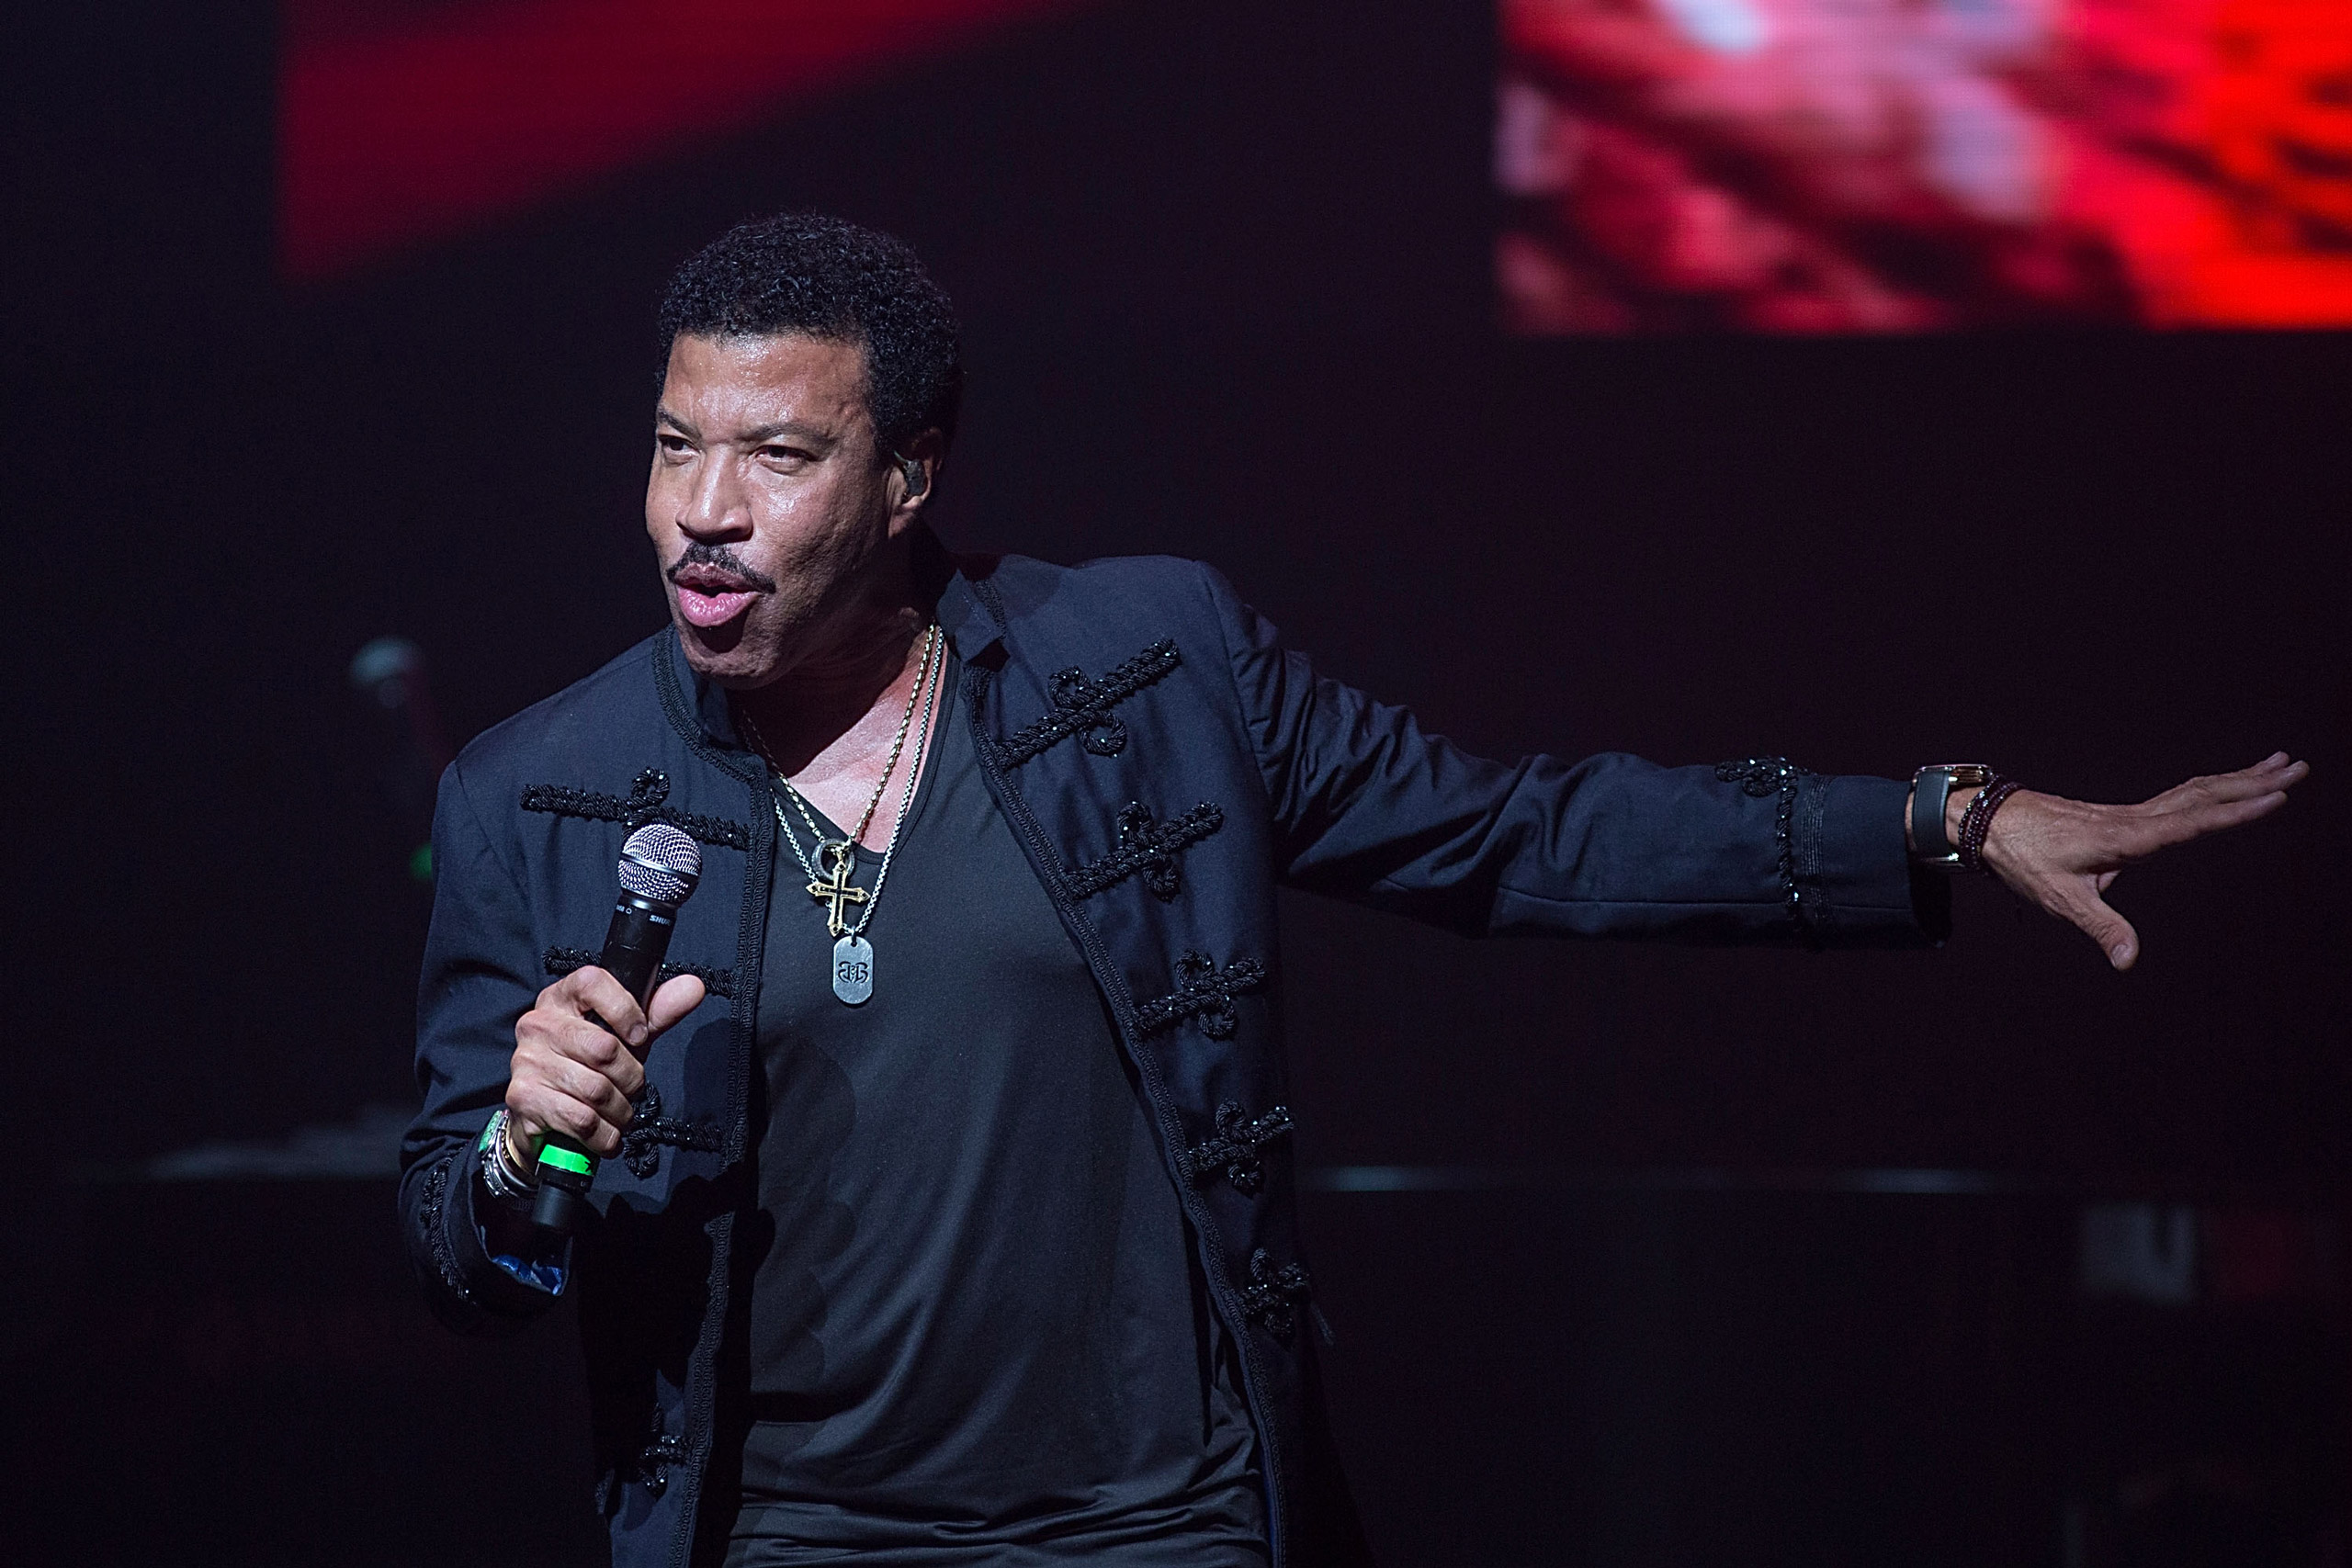 Lionel Richie performs in concert at ACL Live in Austin on October 24, 2015.